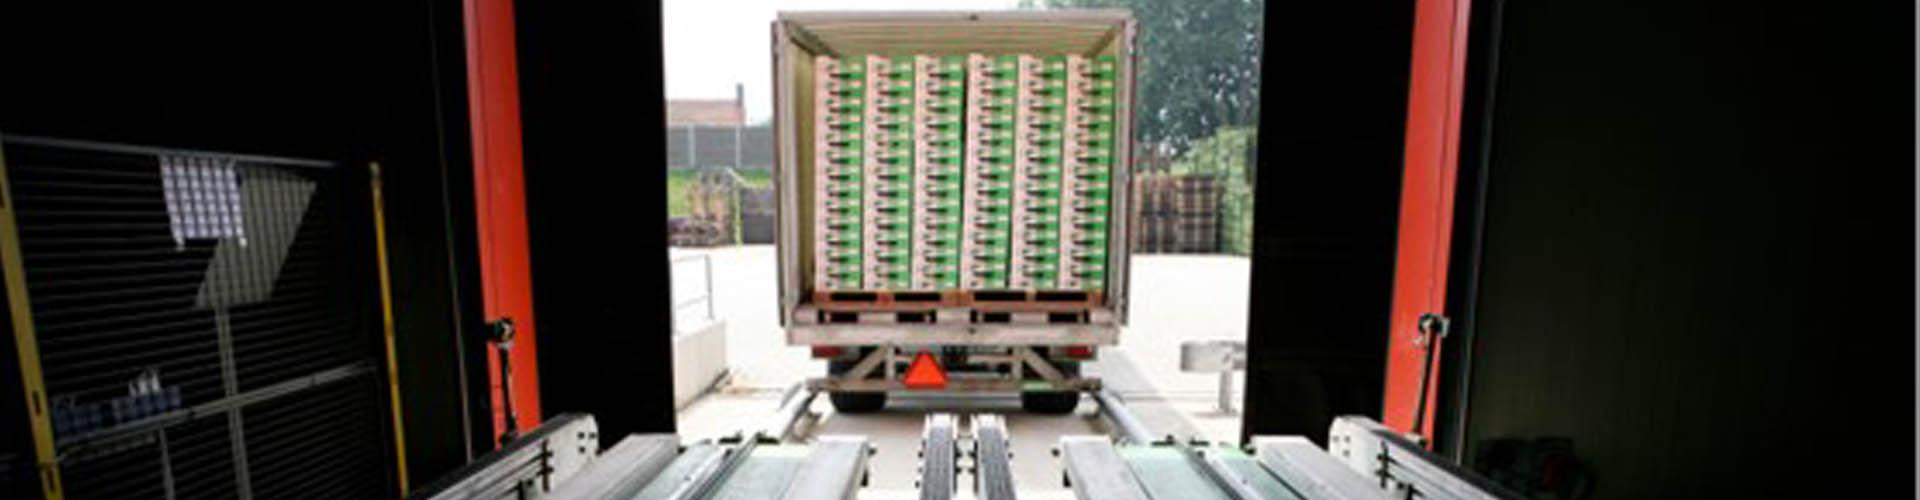 Automatic Truck Loading / Unloading Systems